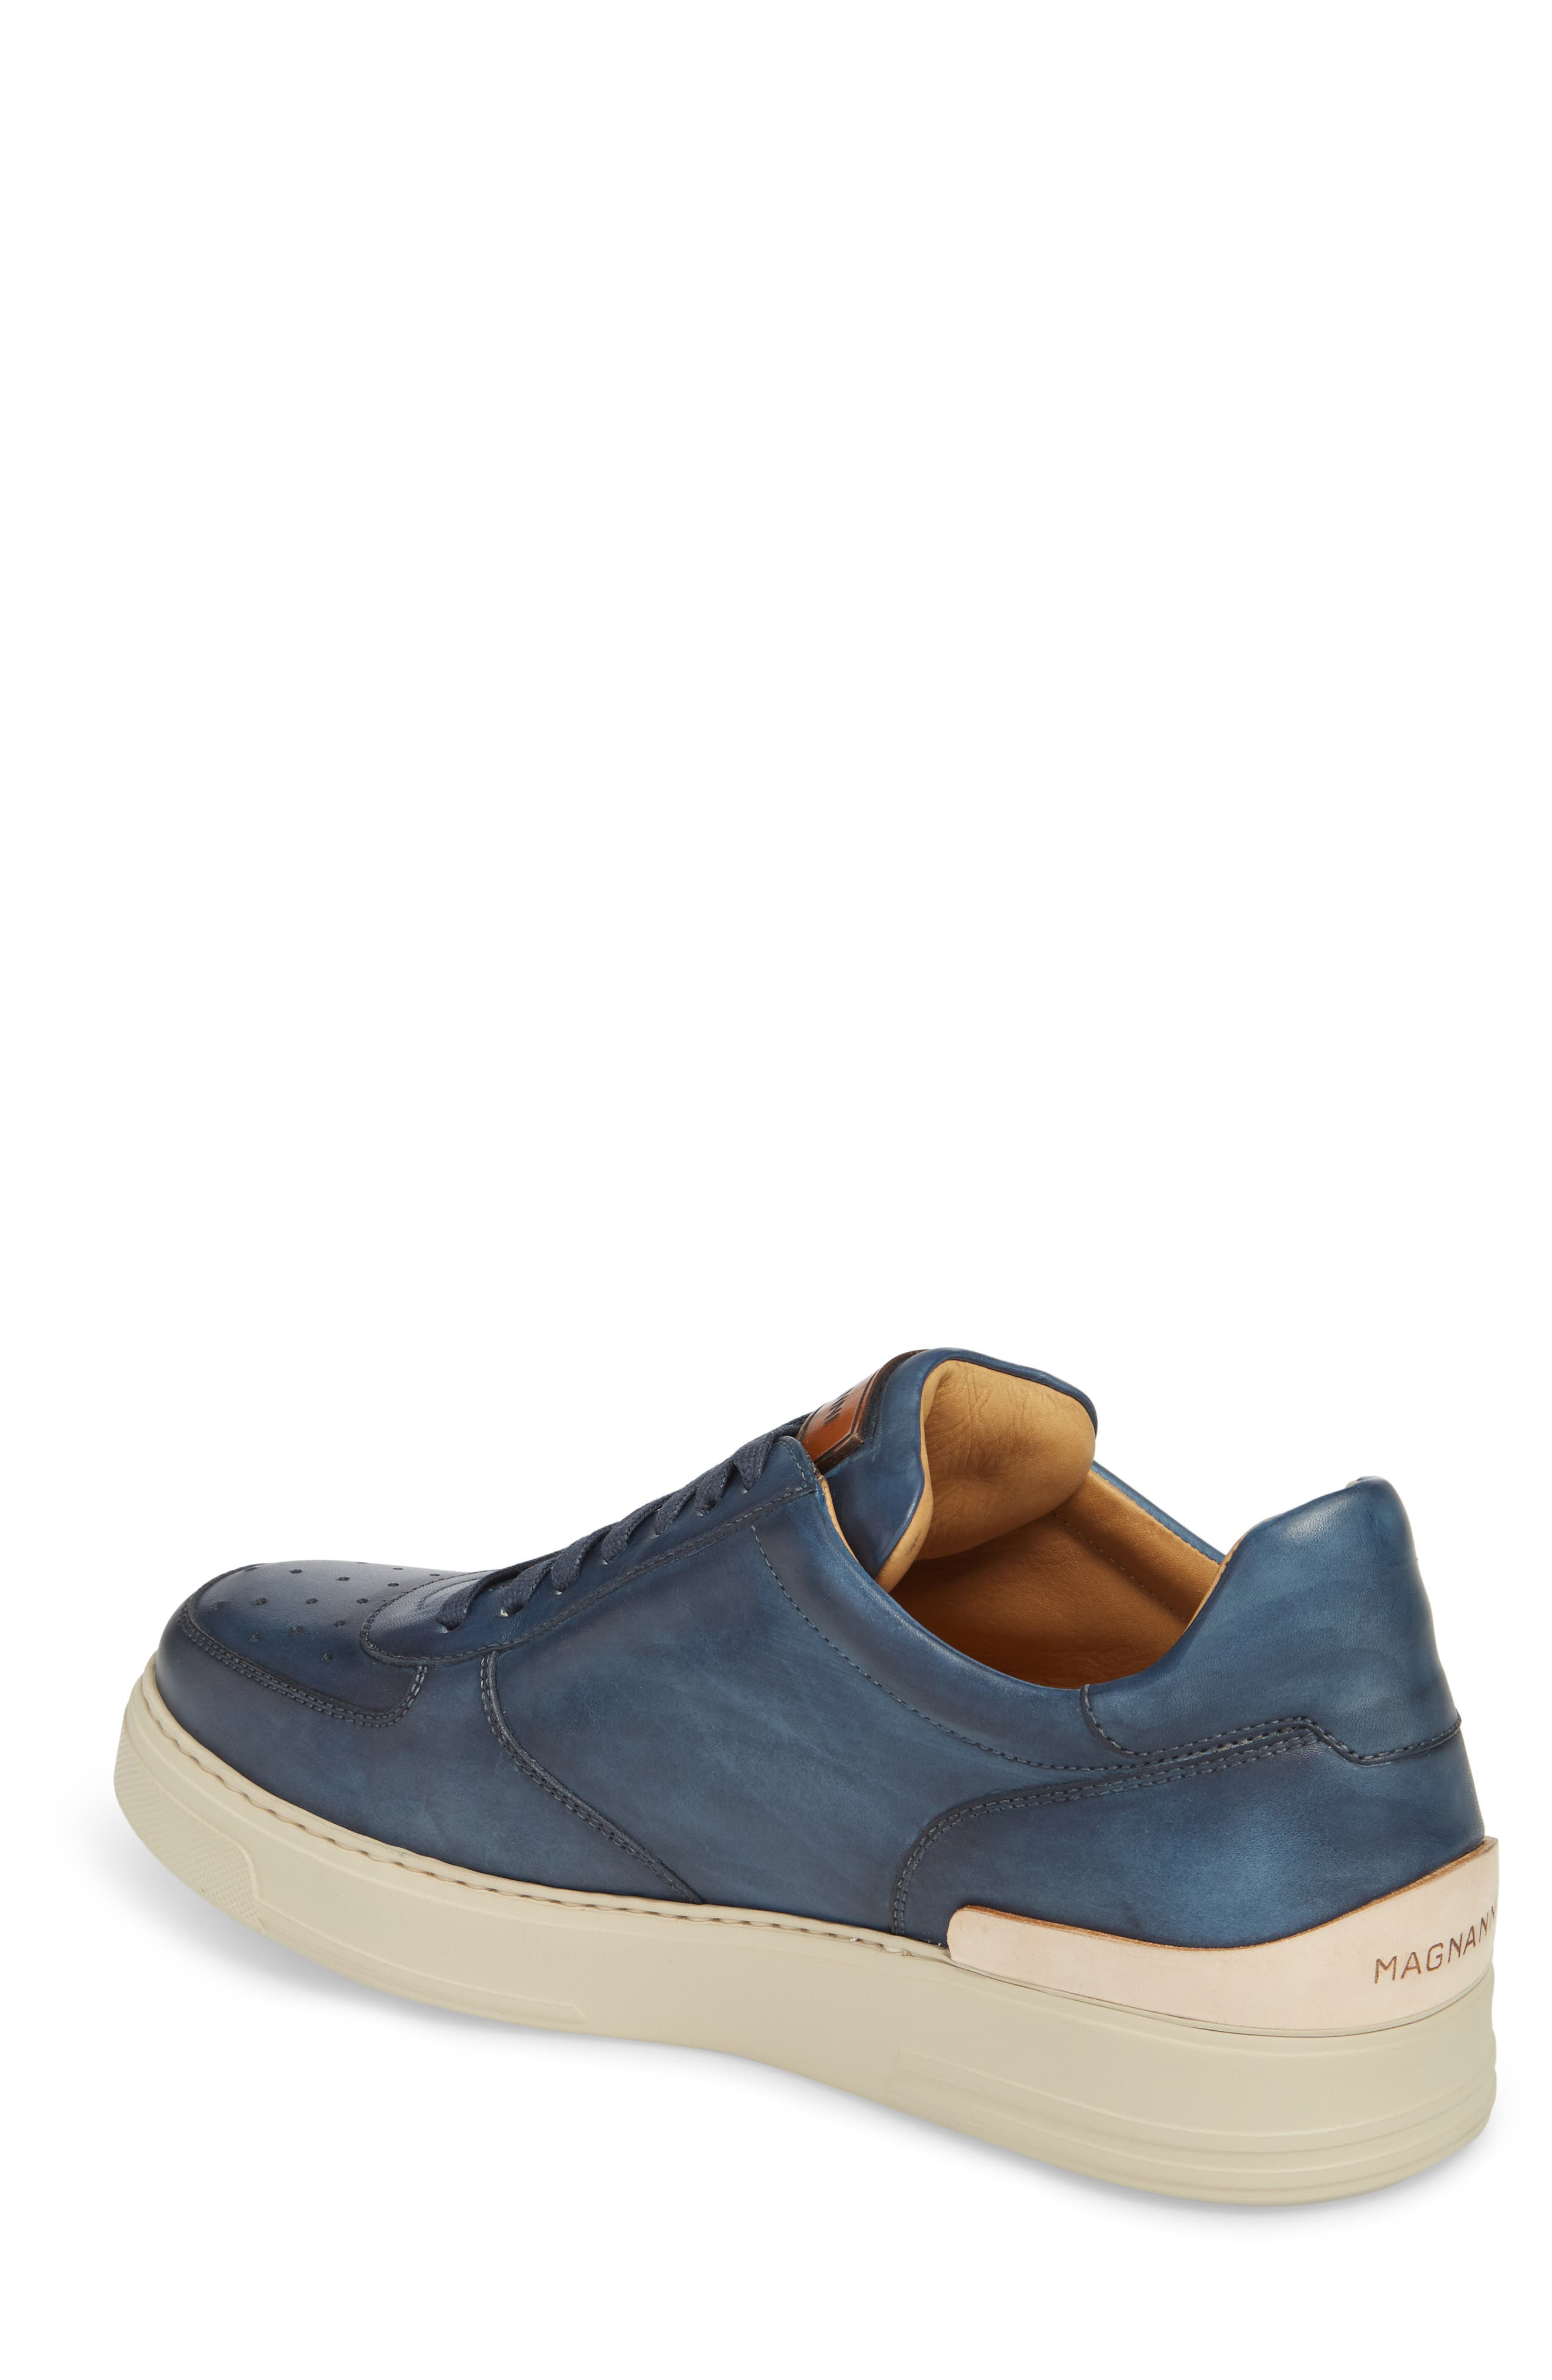 Vada Lo Lace Up Sneaker,                             Alternate thumbnail 2, color,                             Blue Leather